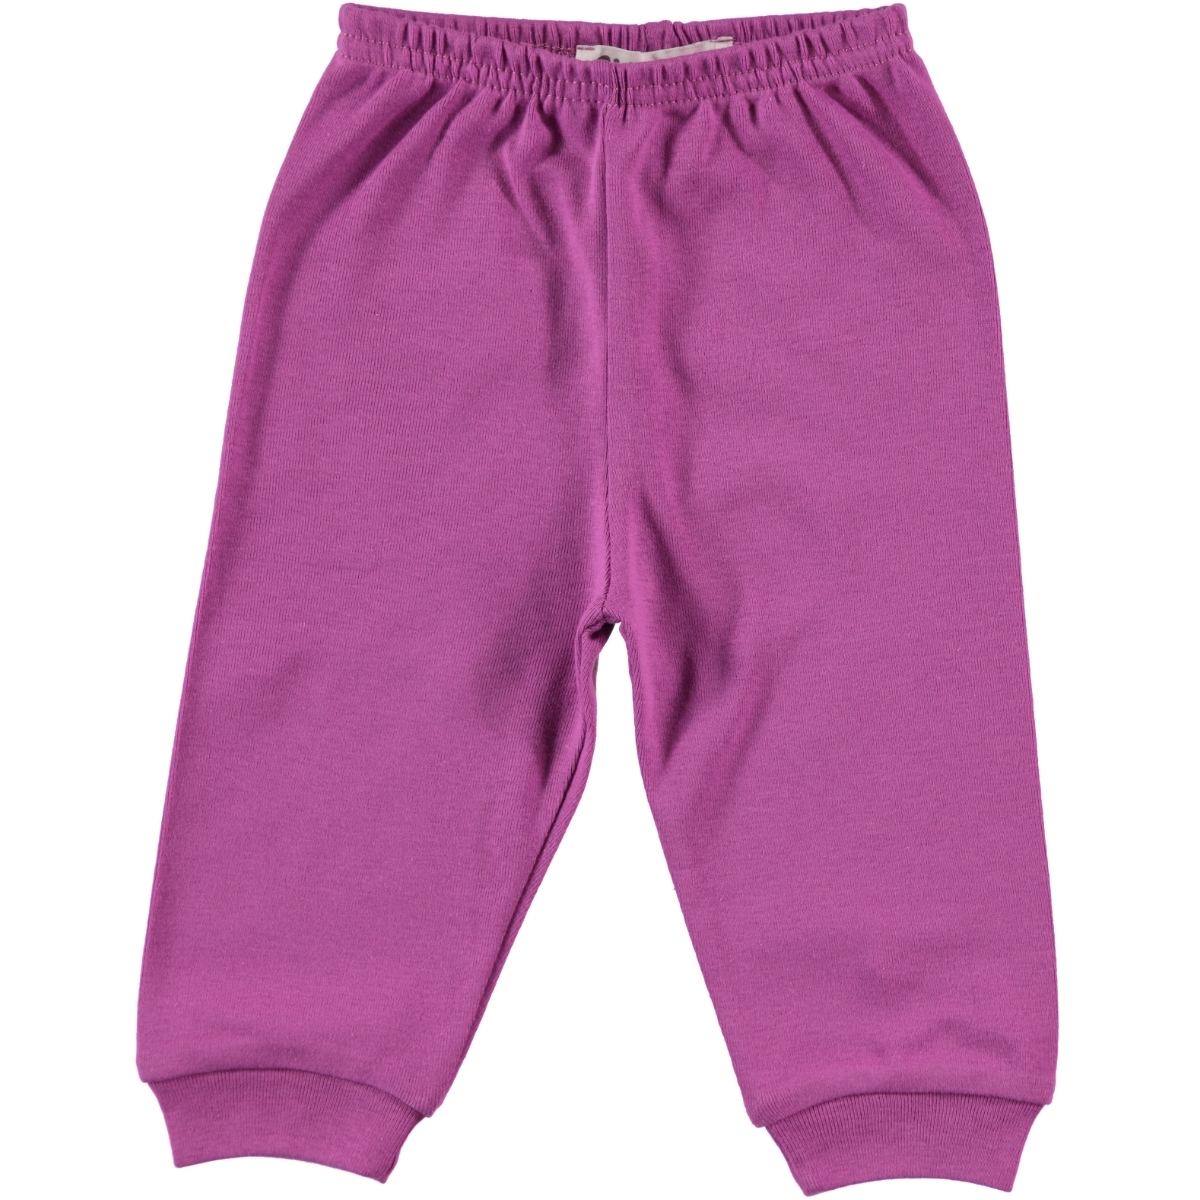 Civil Baby Baby Patiksiz Only The Sub-Purple-0-9 Months